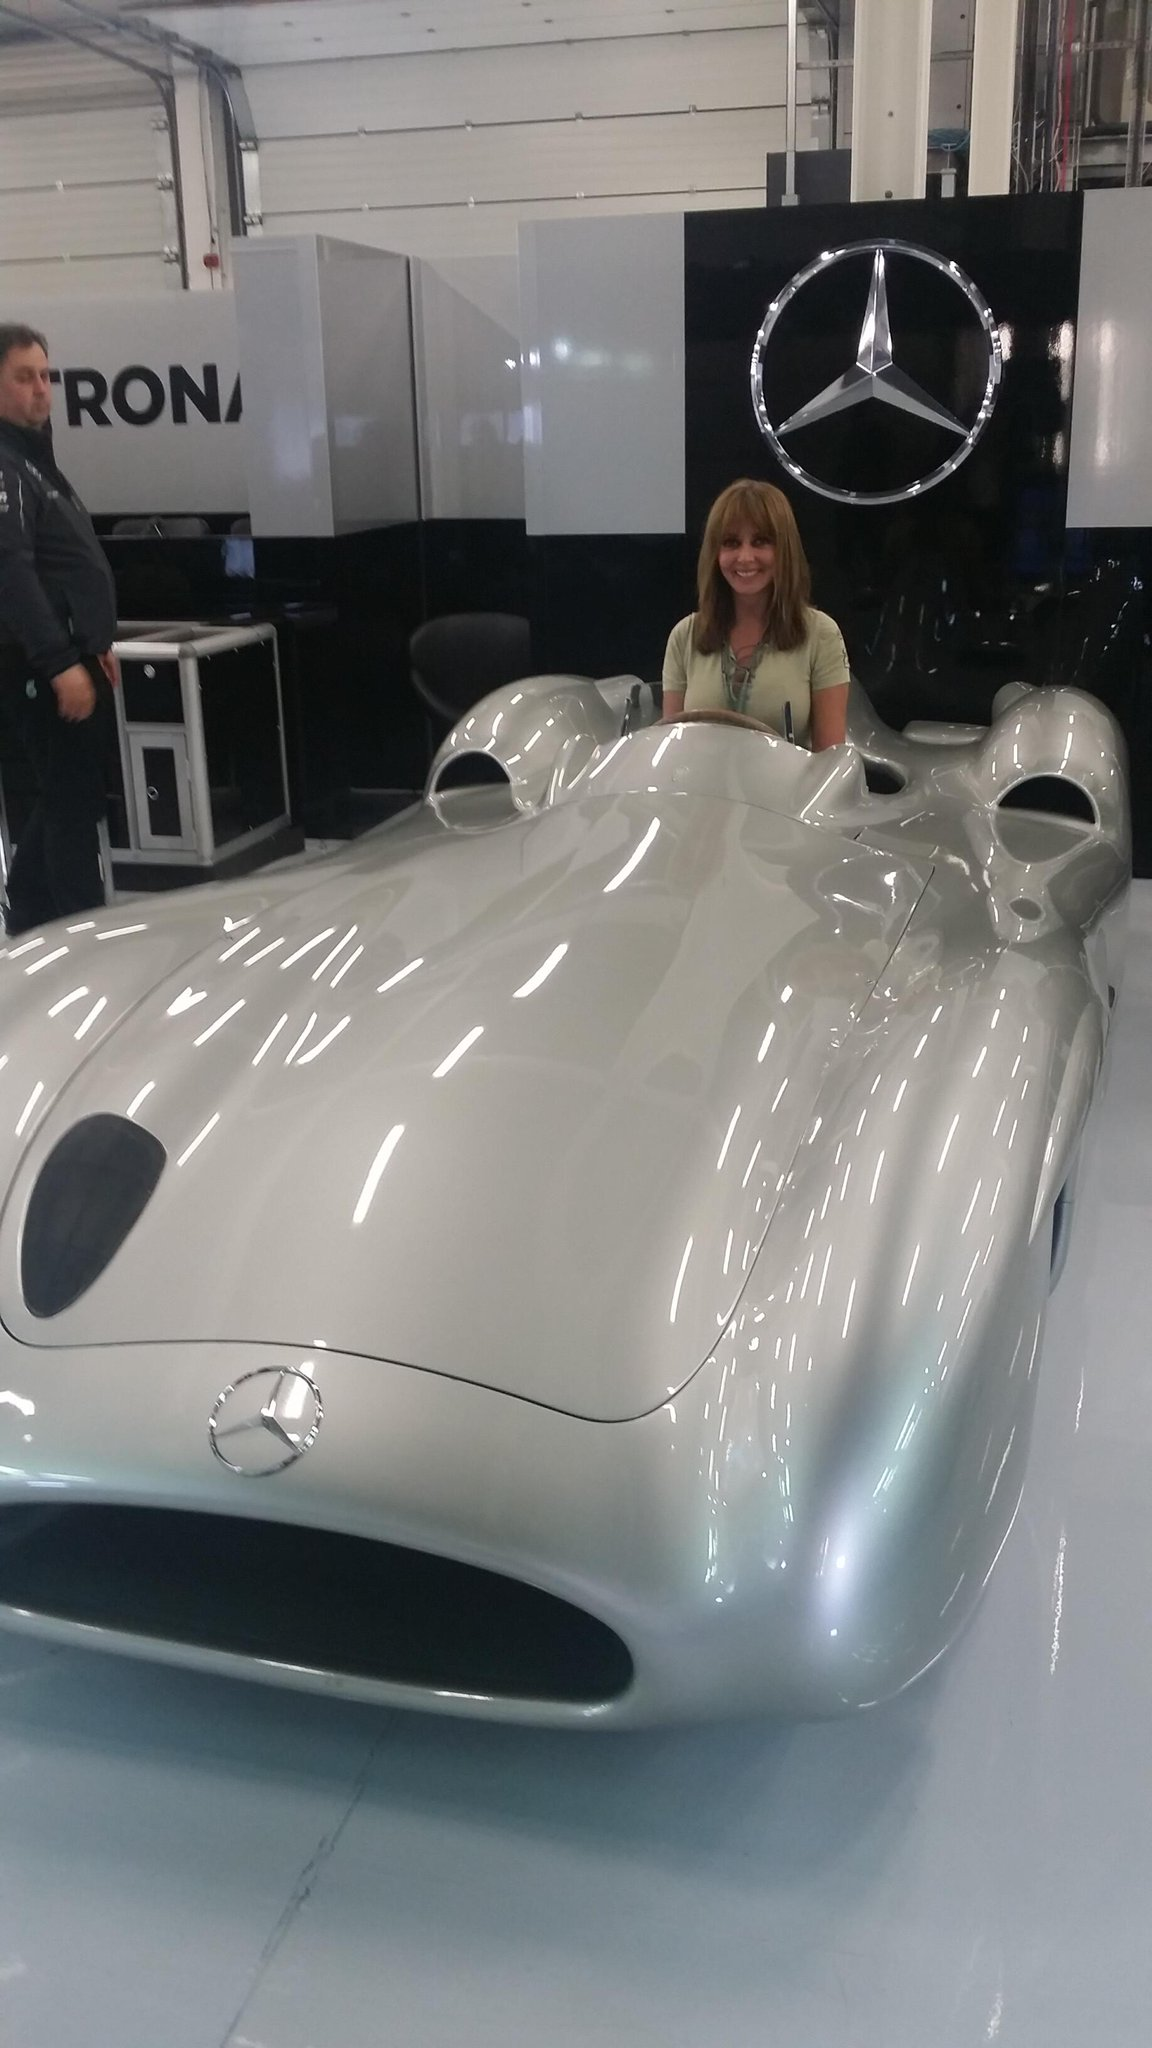 Oh yes,, Fangio's car, the first Mercedes ever won a GP in. Driven by Lady Penelope Vorders? X http://t.co/hZQWiLAYQy